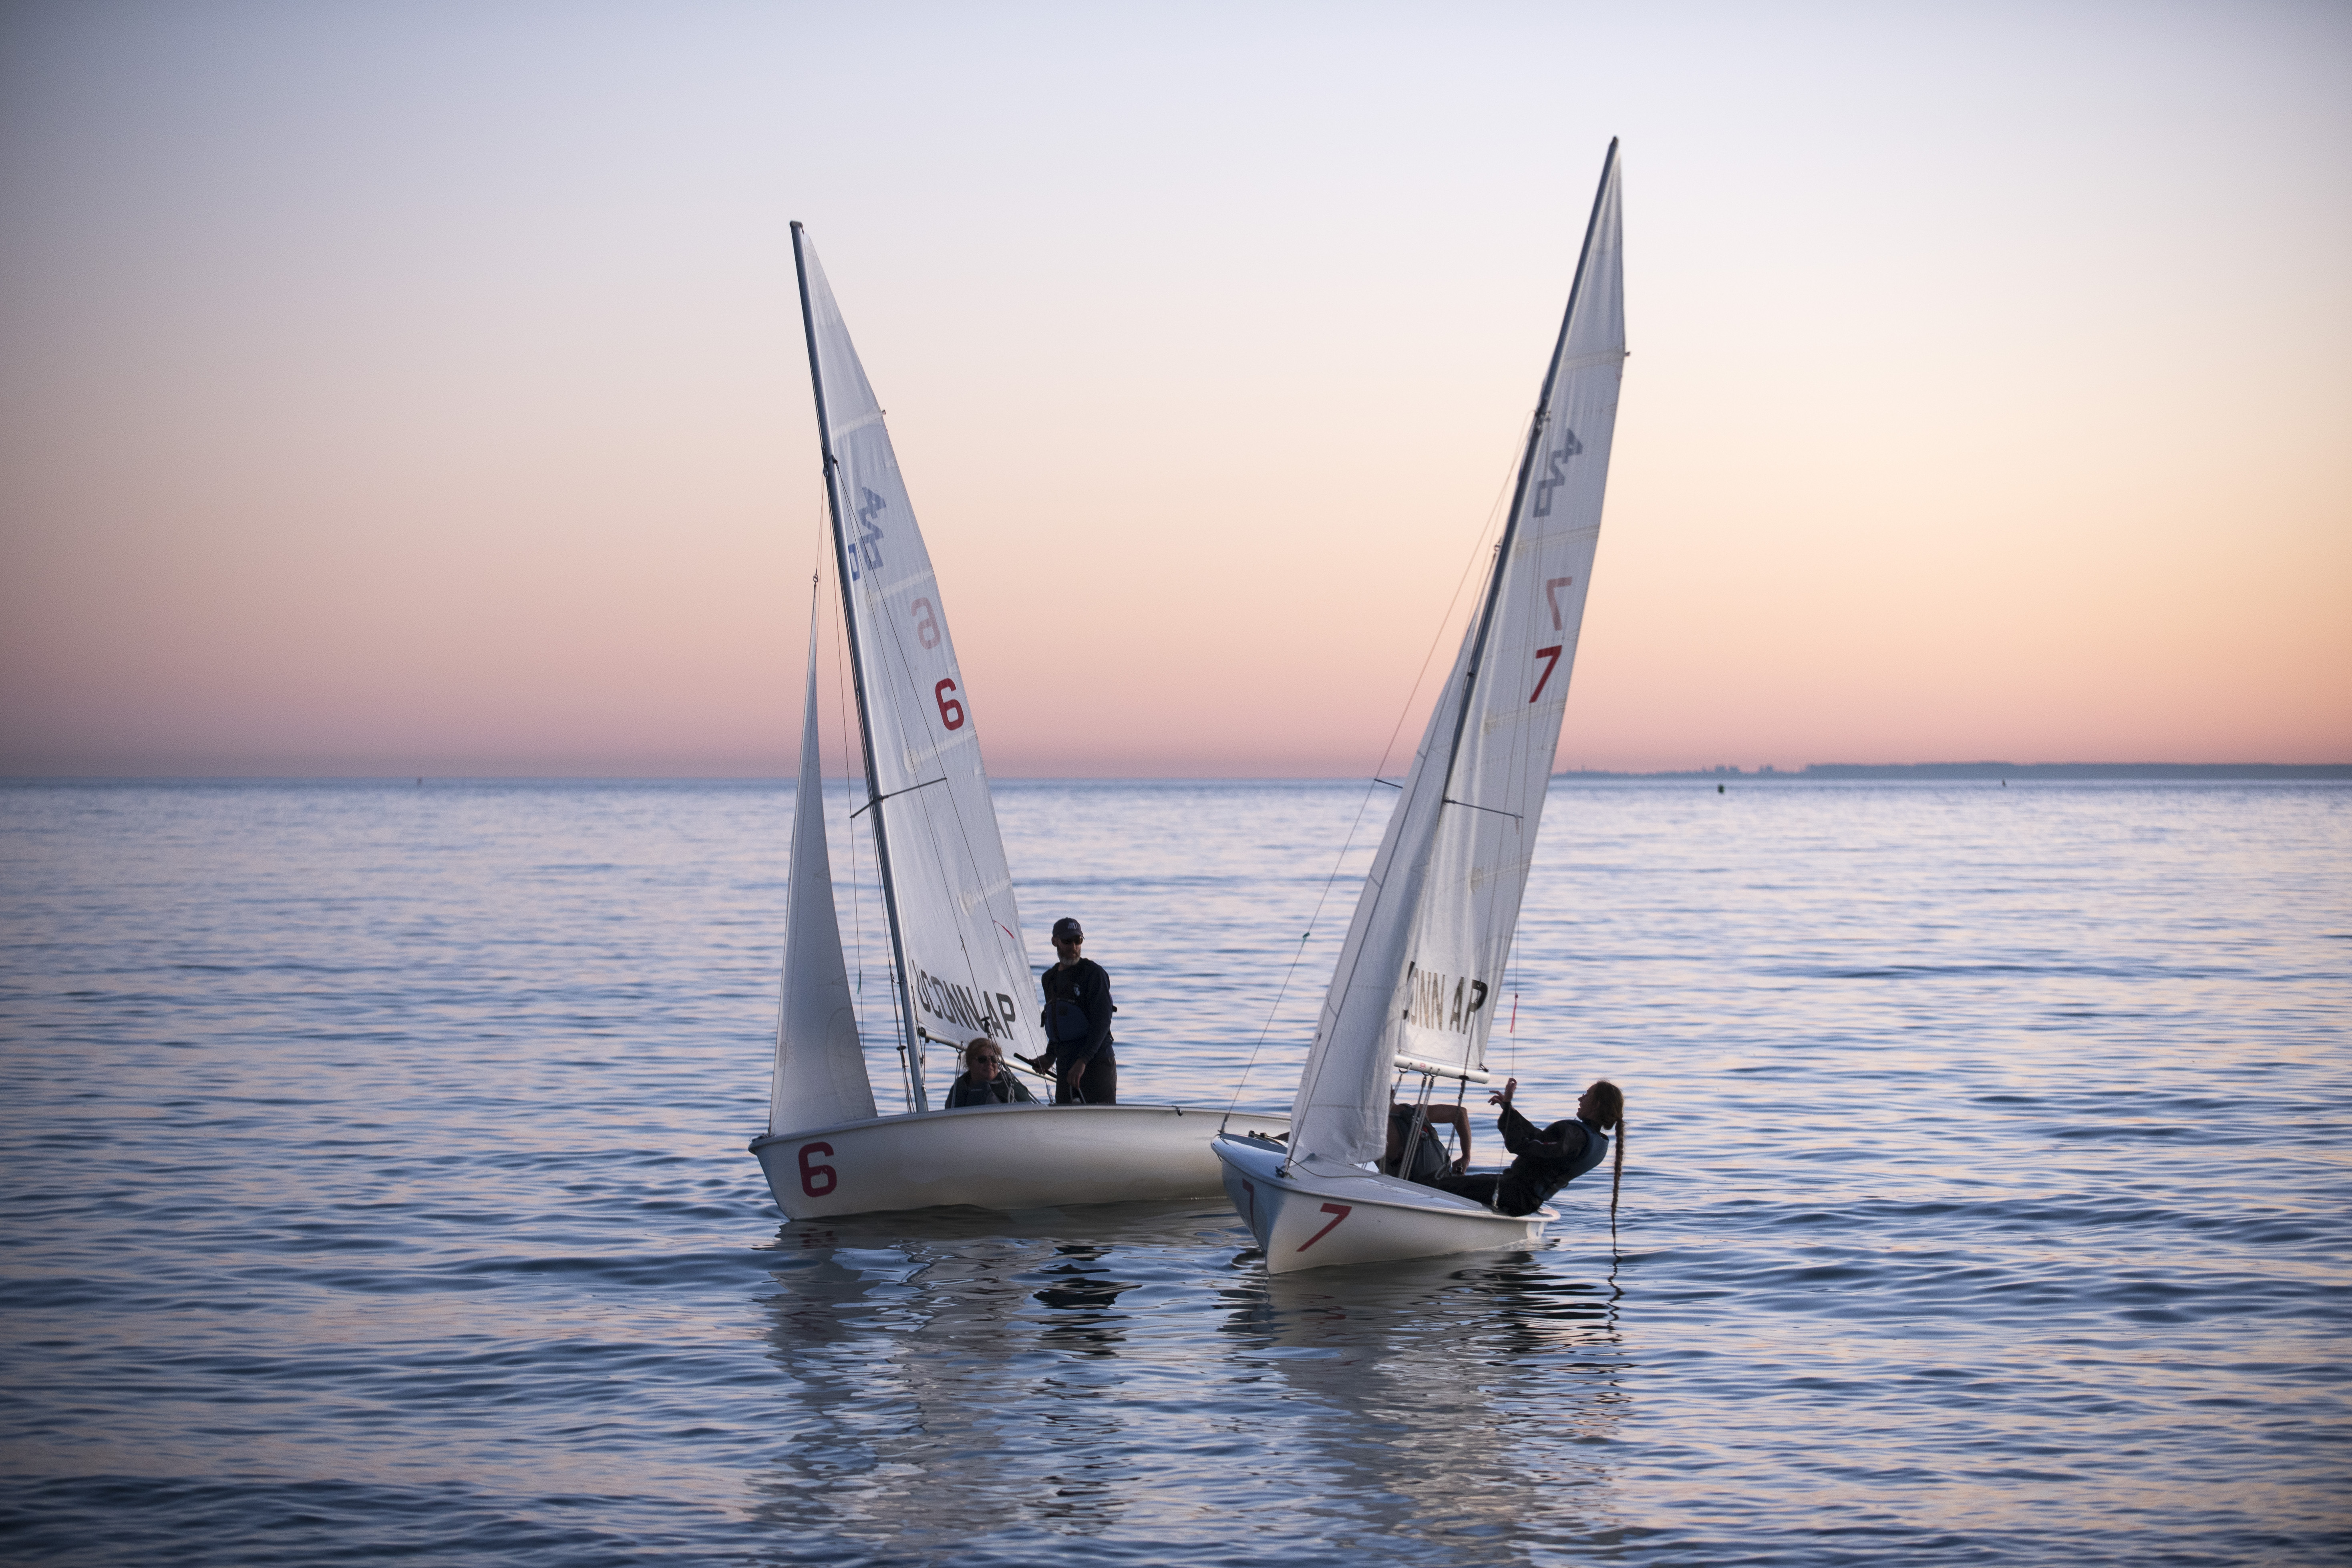 The UConn sailing club sailing in Long Island Sound during sunset at the Avery Point campus on Nov. 18, 2016. (Sean Flynn/UConn Photo)